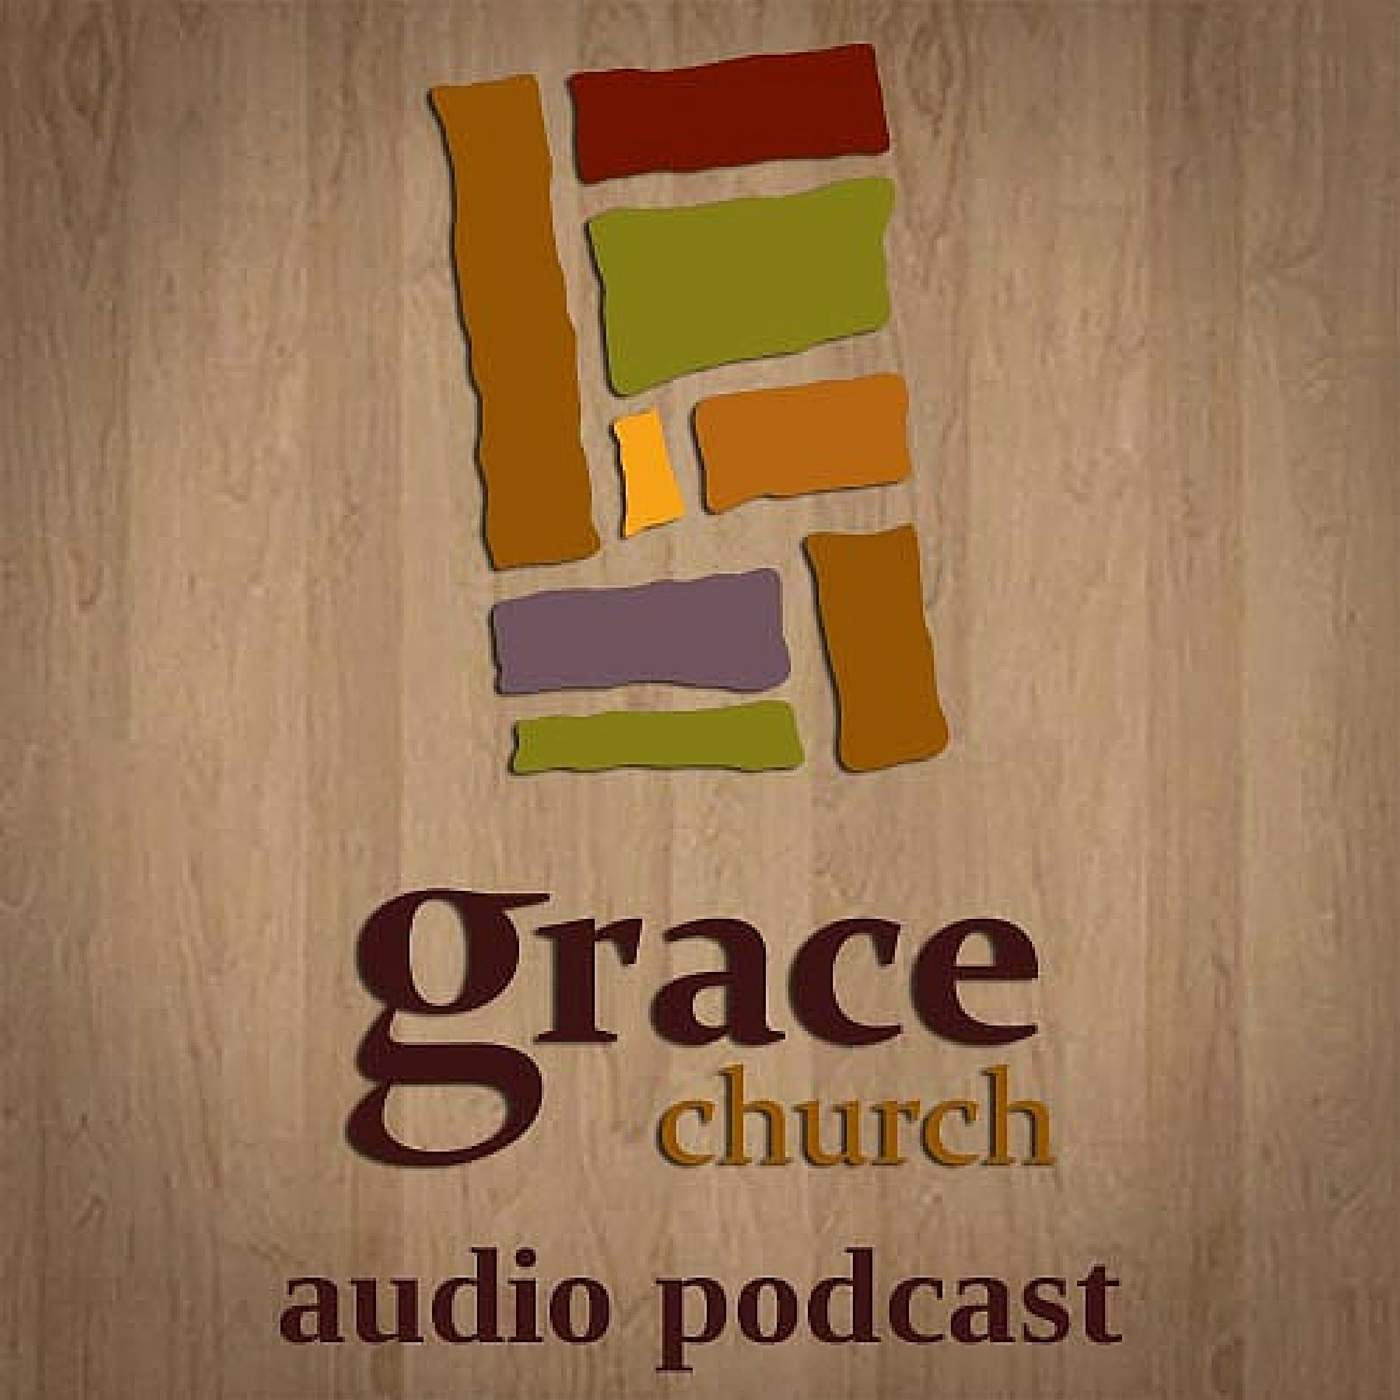 Grace Church Audio Podcast